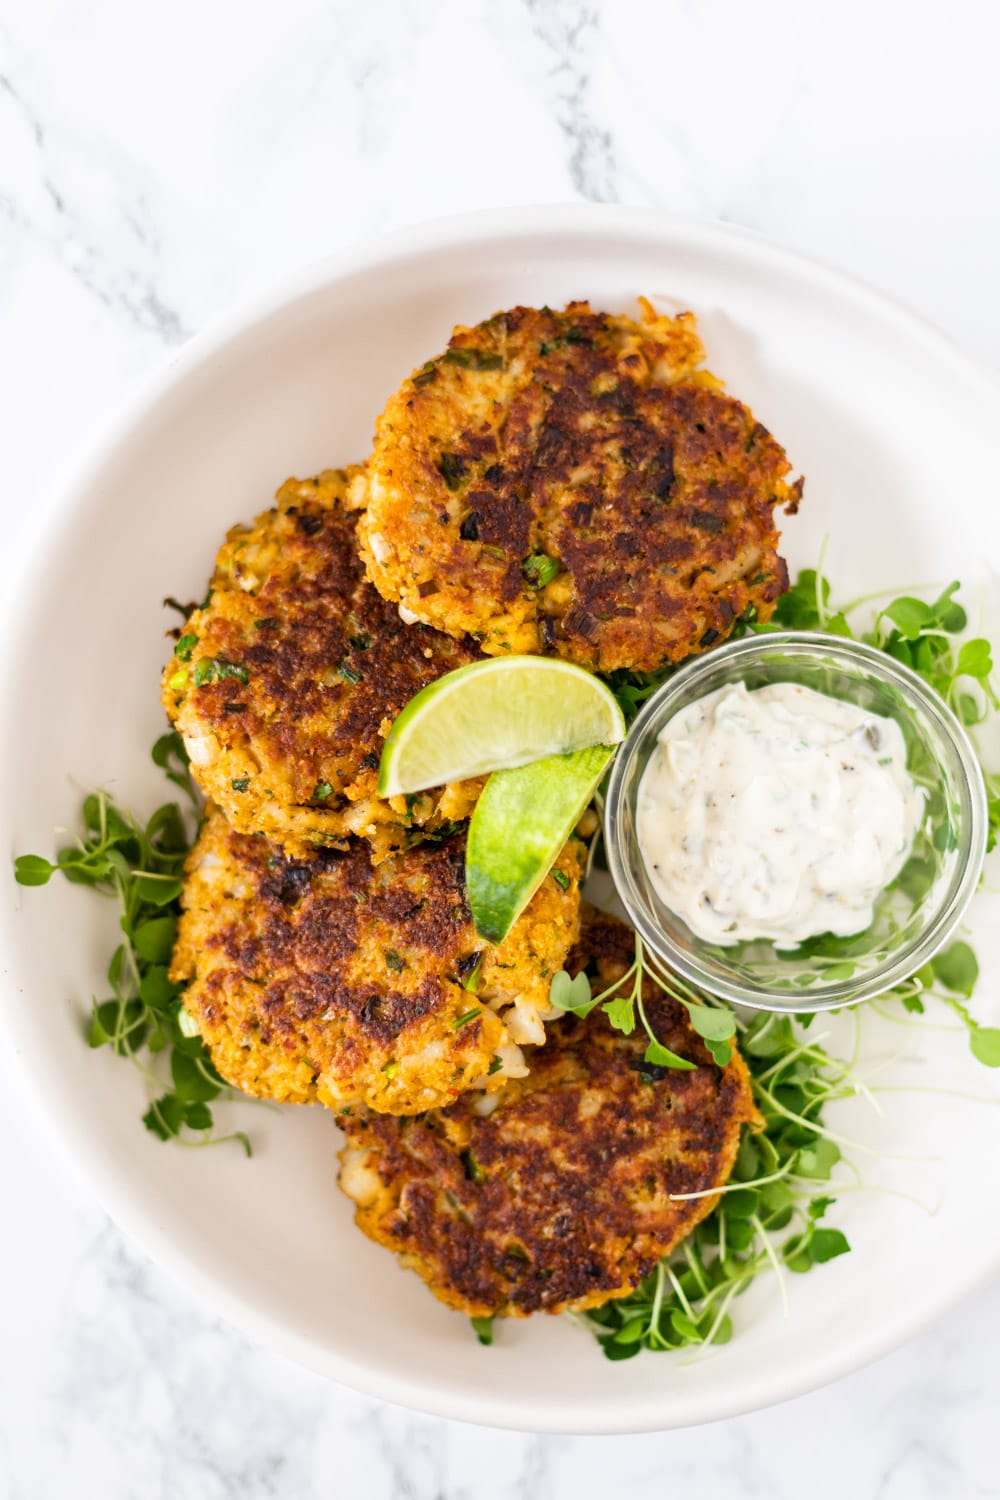 A top down view of Thai fish cakes on a plate with tartar sauce.